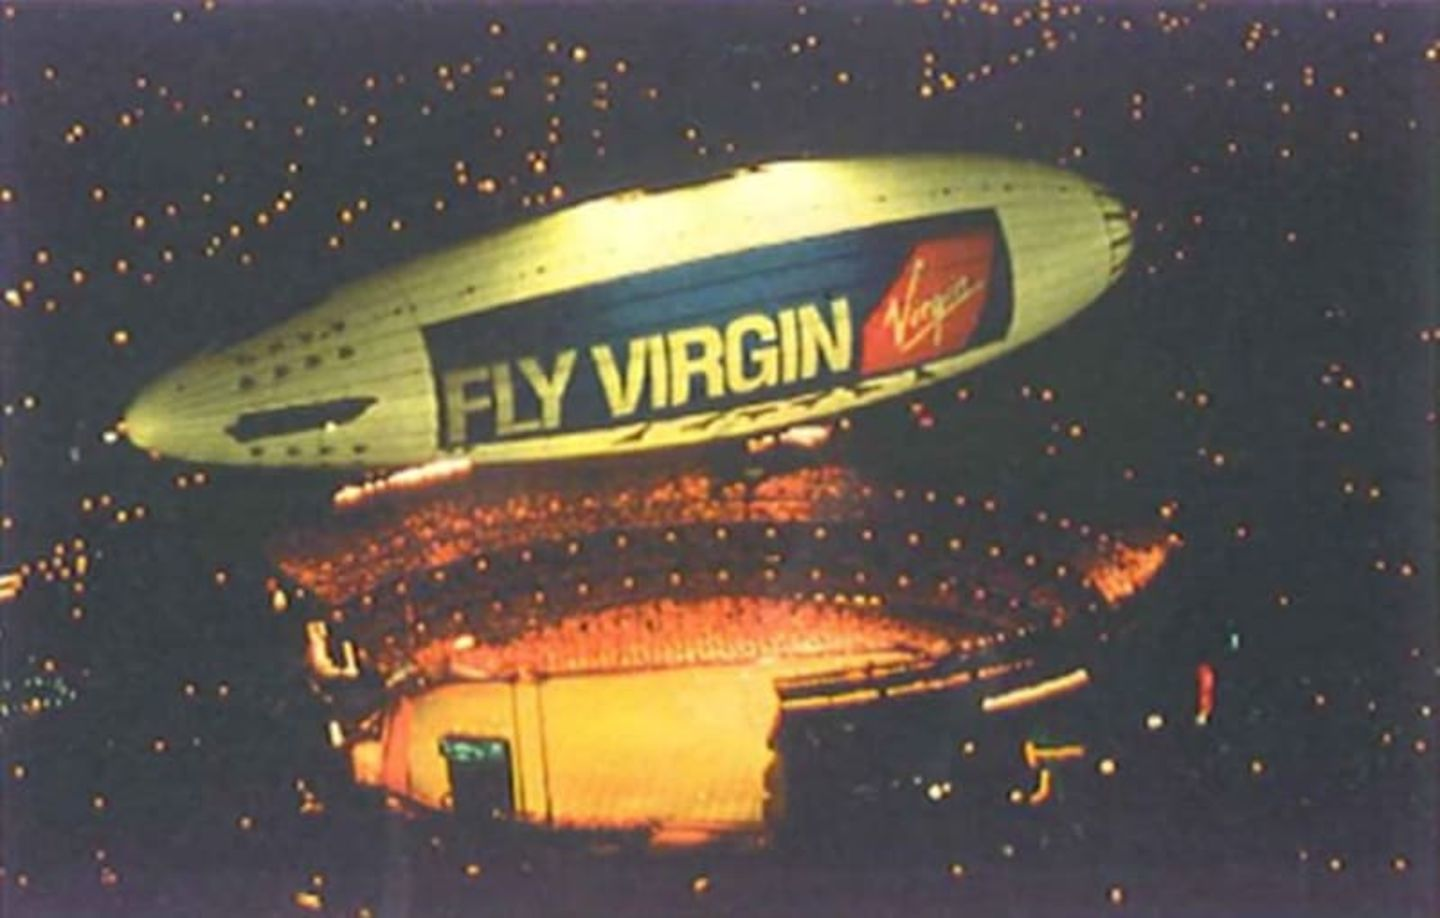 A Fly Virgin blimp flying over the superbowl